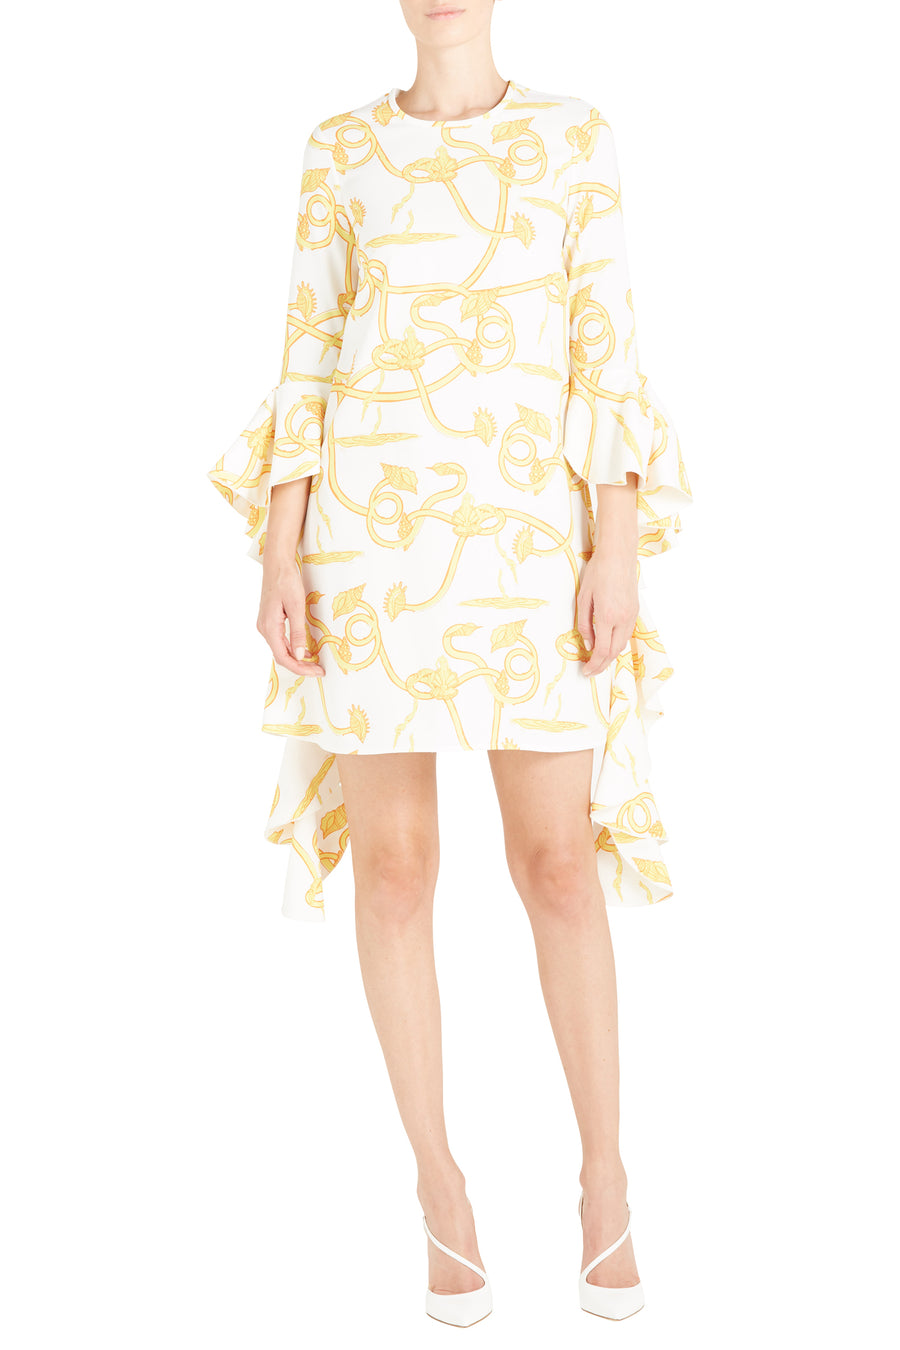 KILKENNY FRILL SLV MINI DRESS